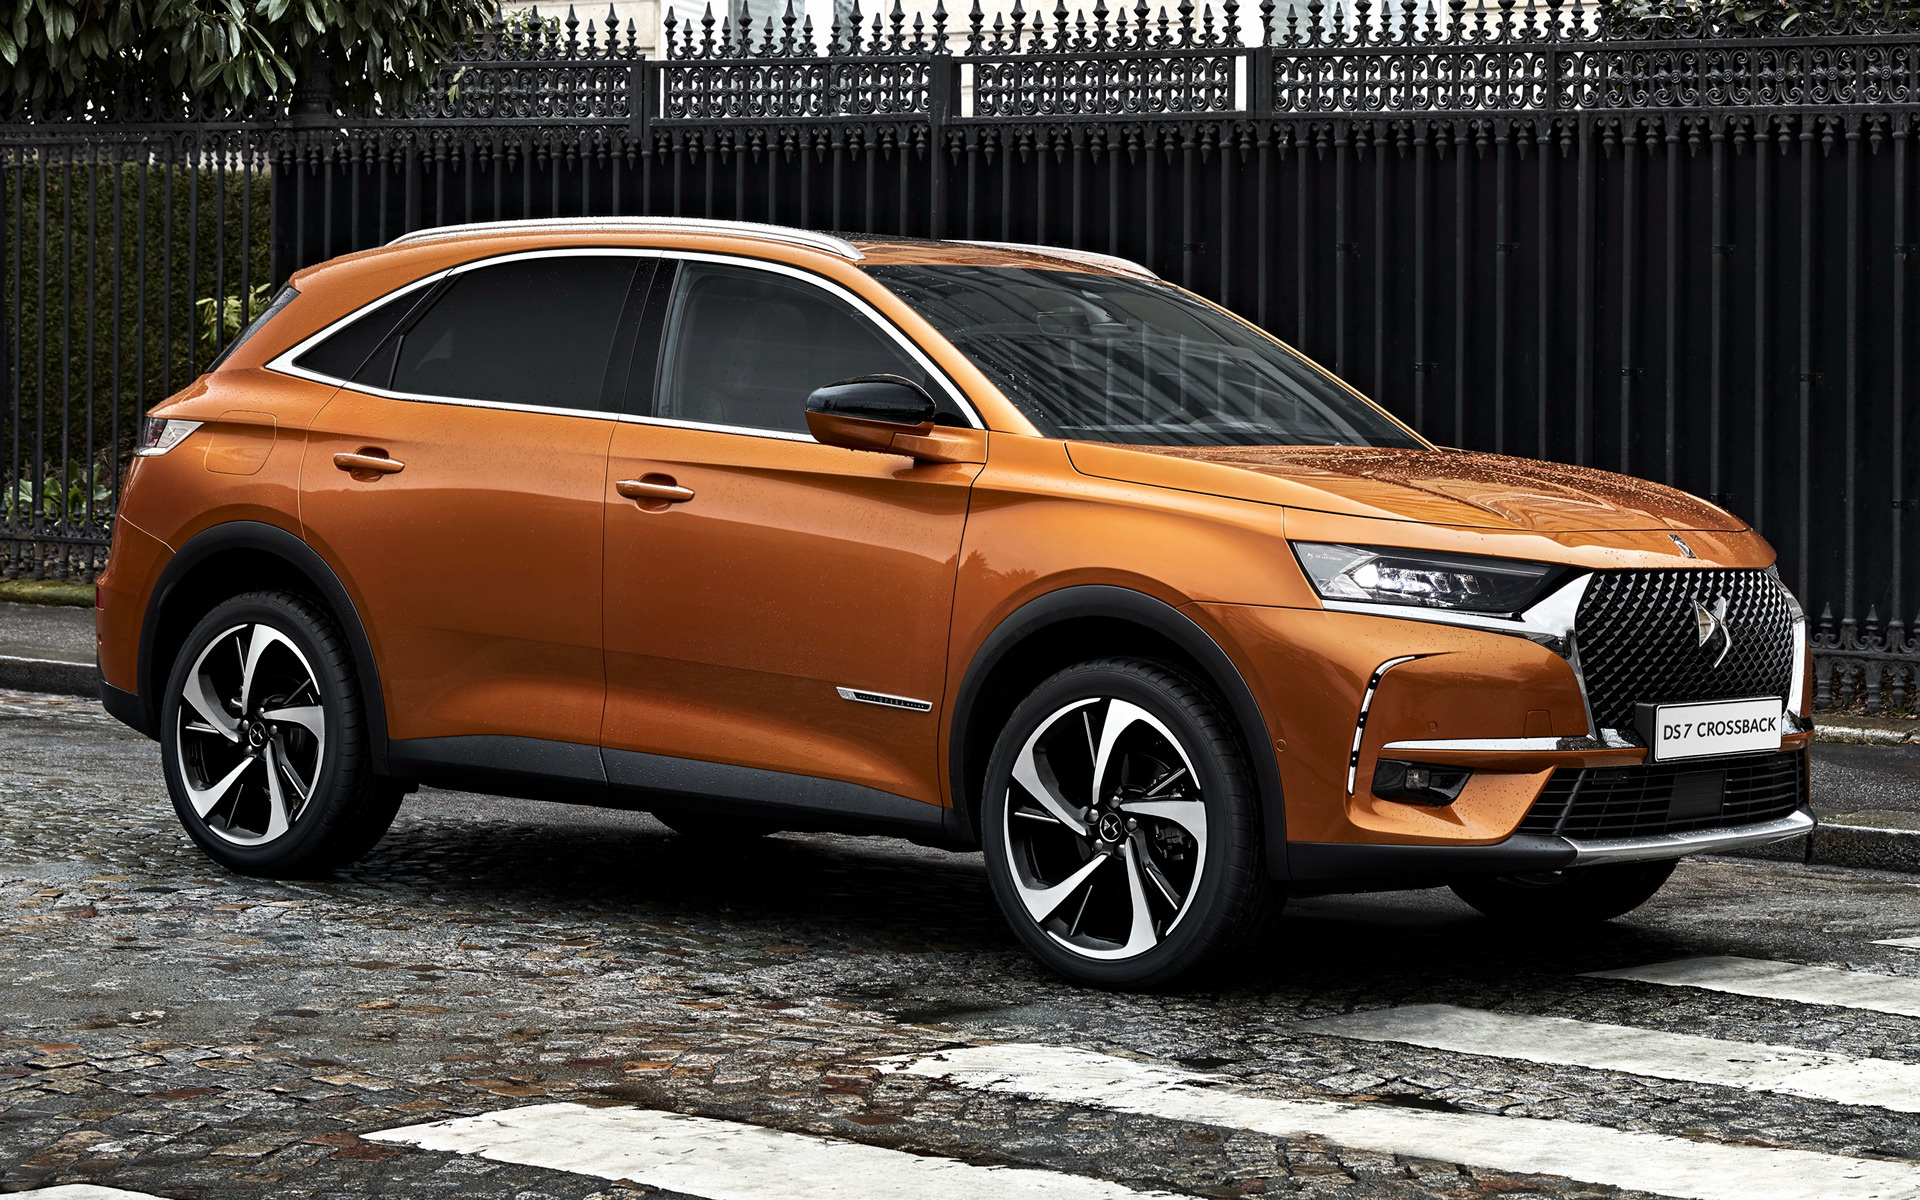 2017 DS 7 Crossback - Wallpapers and HD Images | Car Pixel